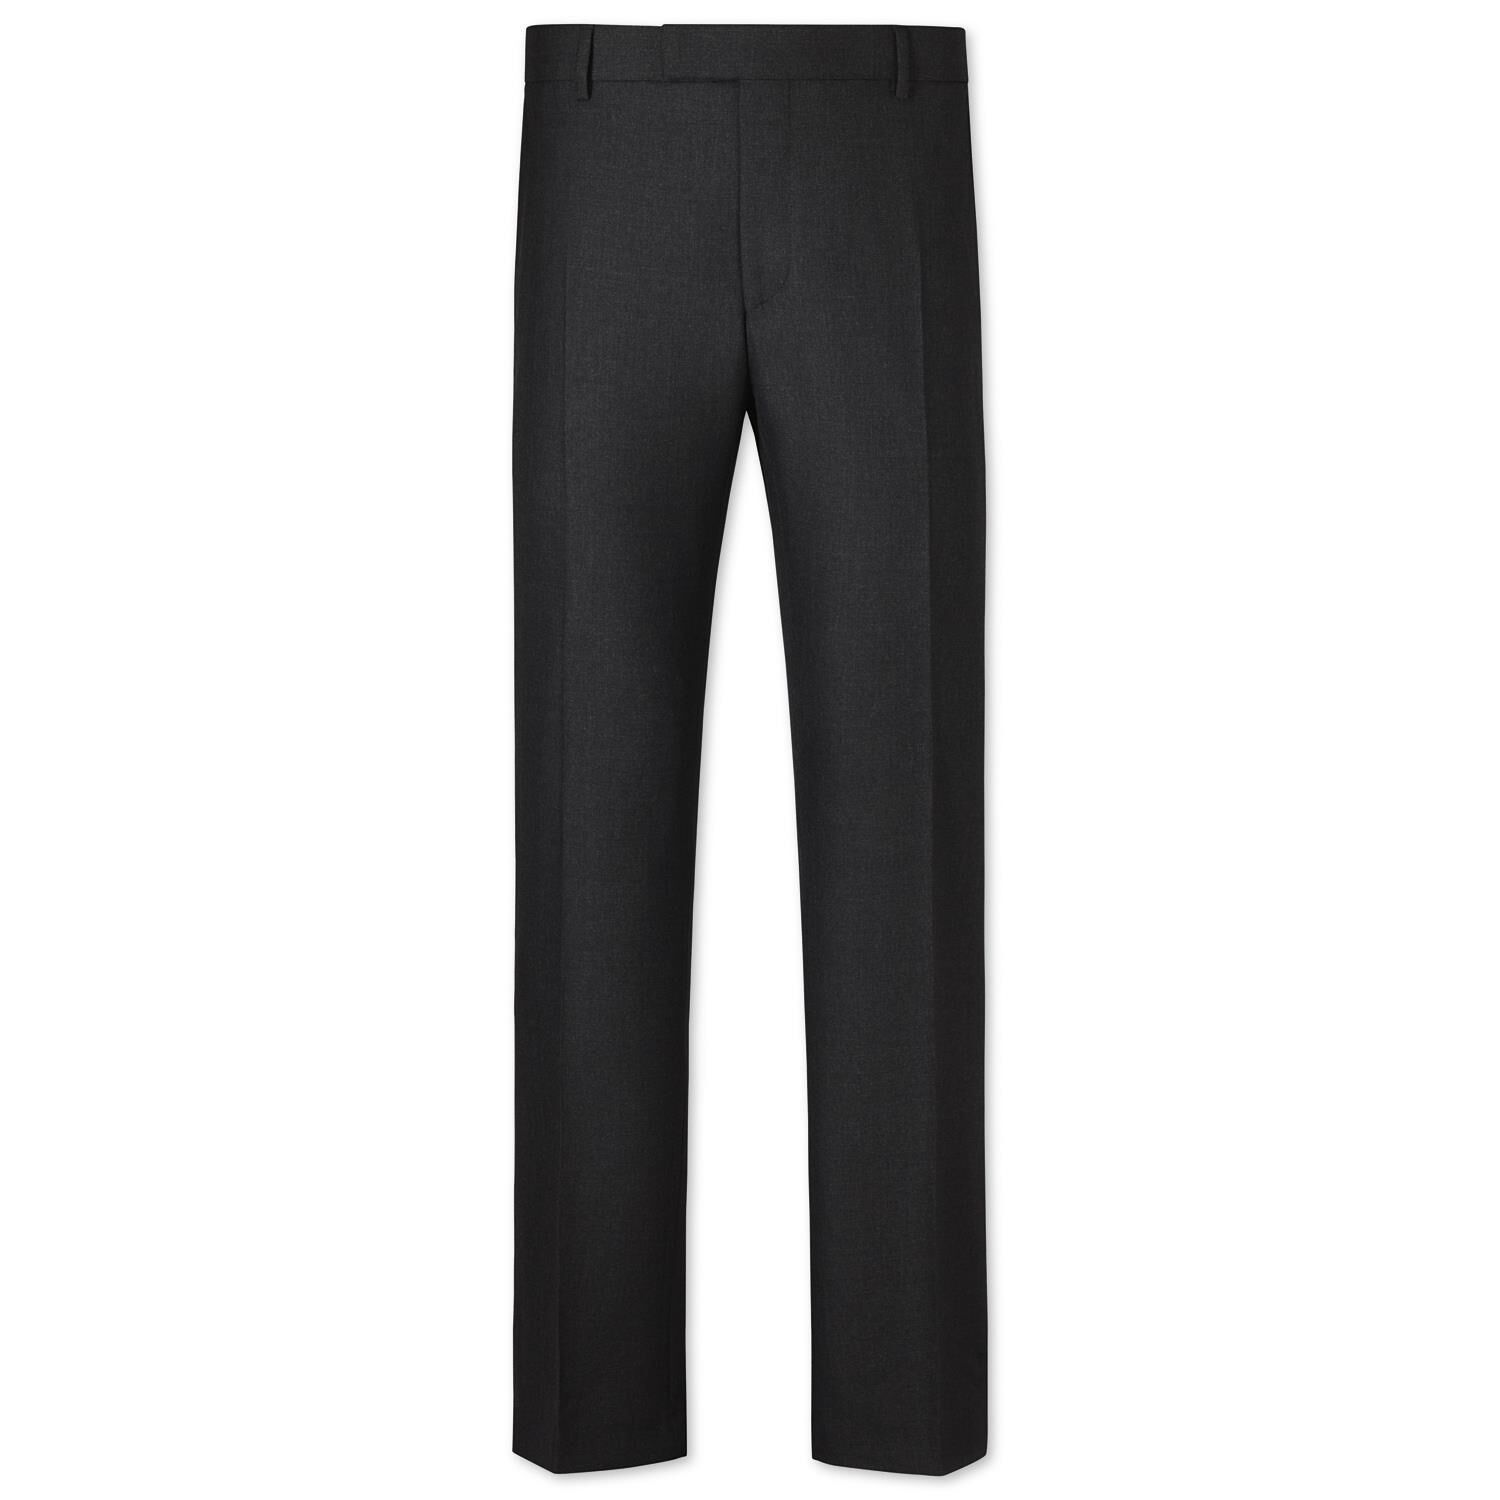 Charcoal Slim Fit British Hopsack Luxury Suit Trousers Size W34 L32 by Charles Tyrwhitt